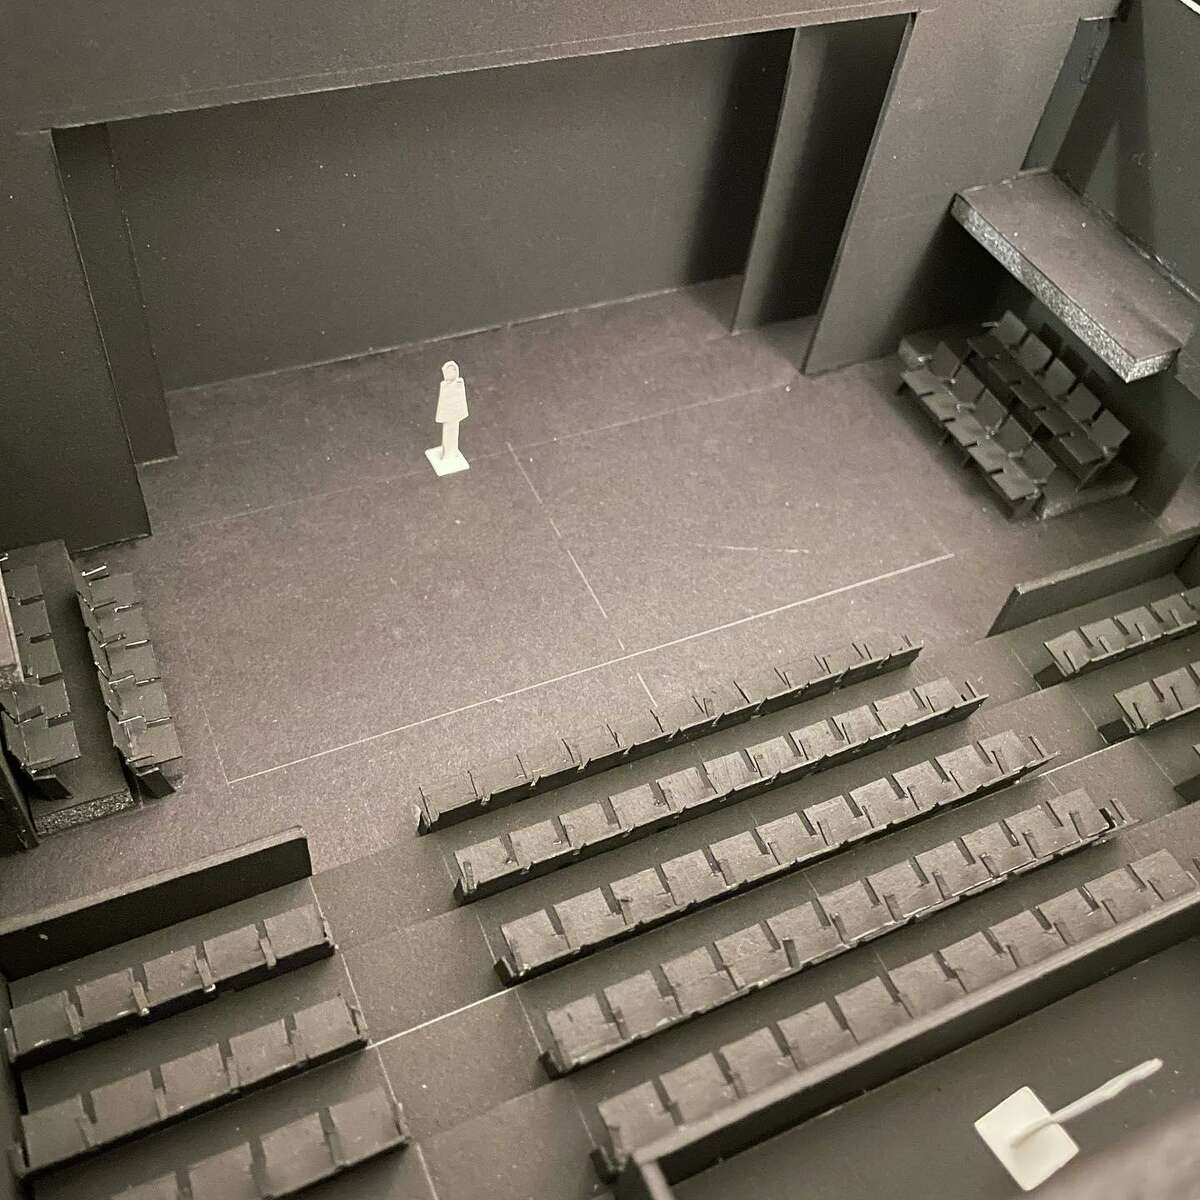 Class Act Productions recently launched a campaign to open a new 125-seat theatre in South Montgomery County. Pictured is a model of what the space will look like once completed.